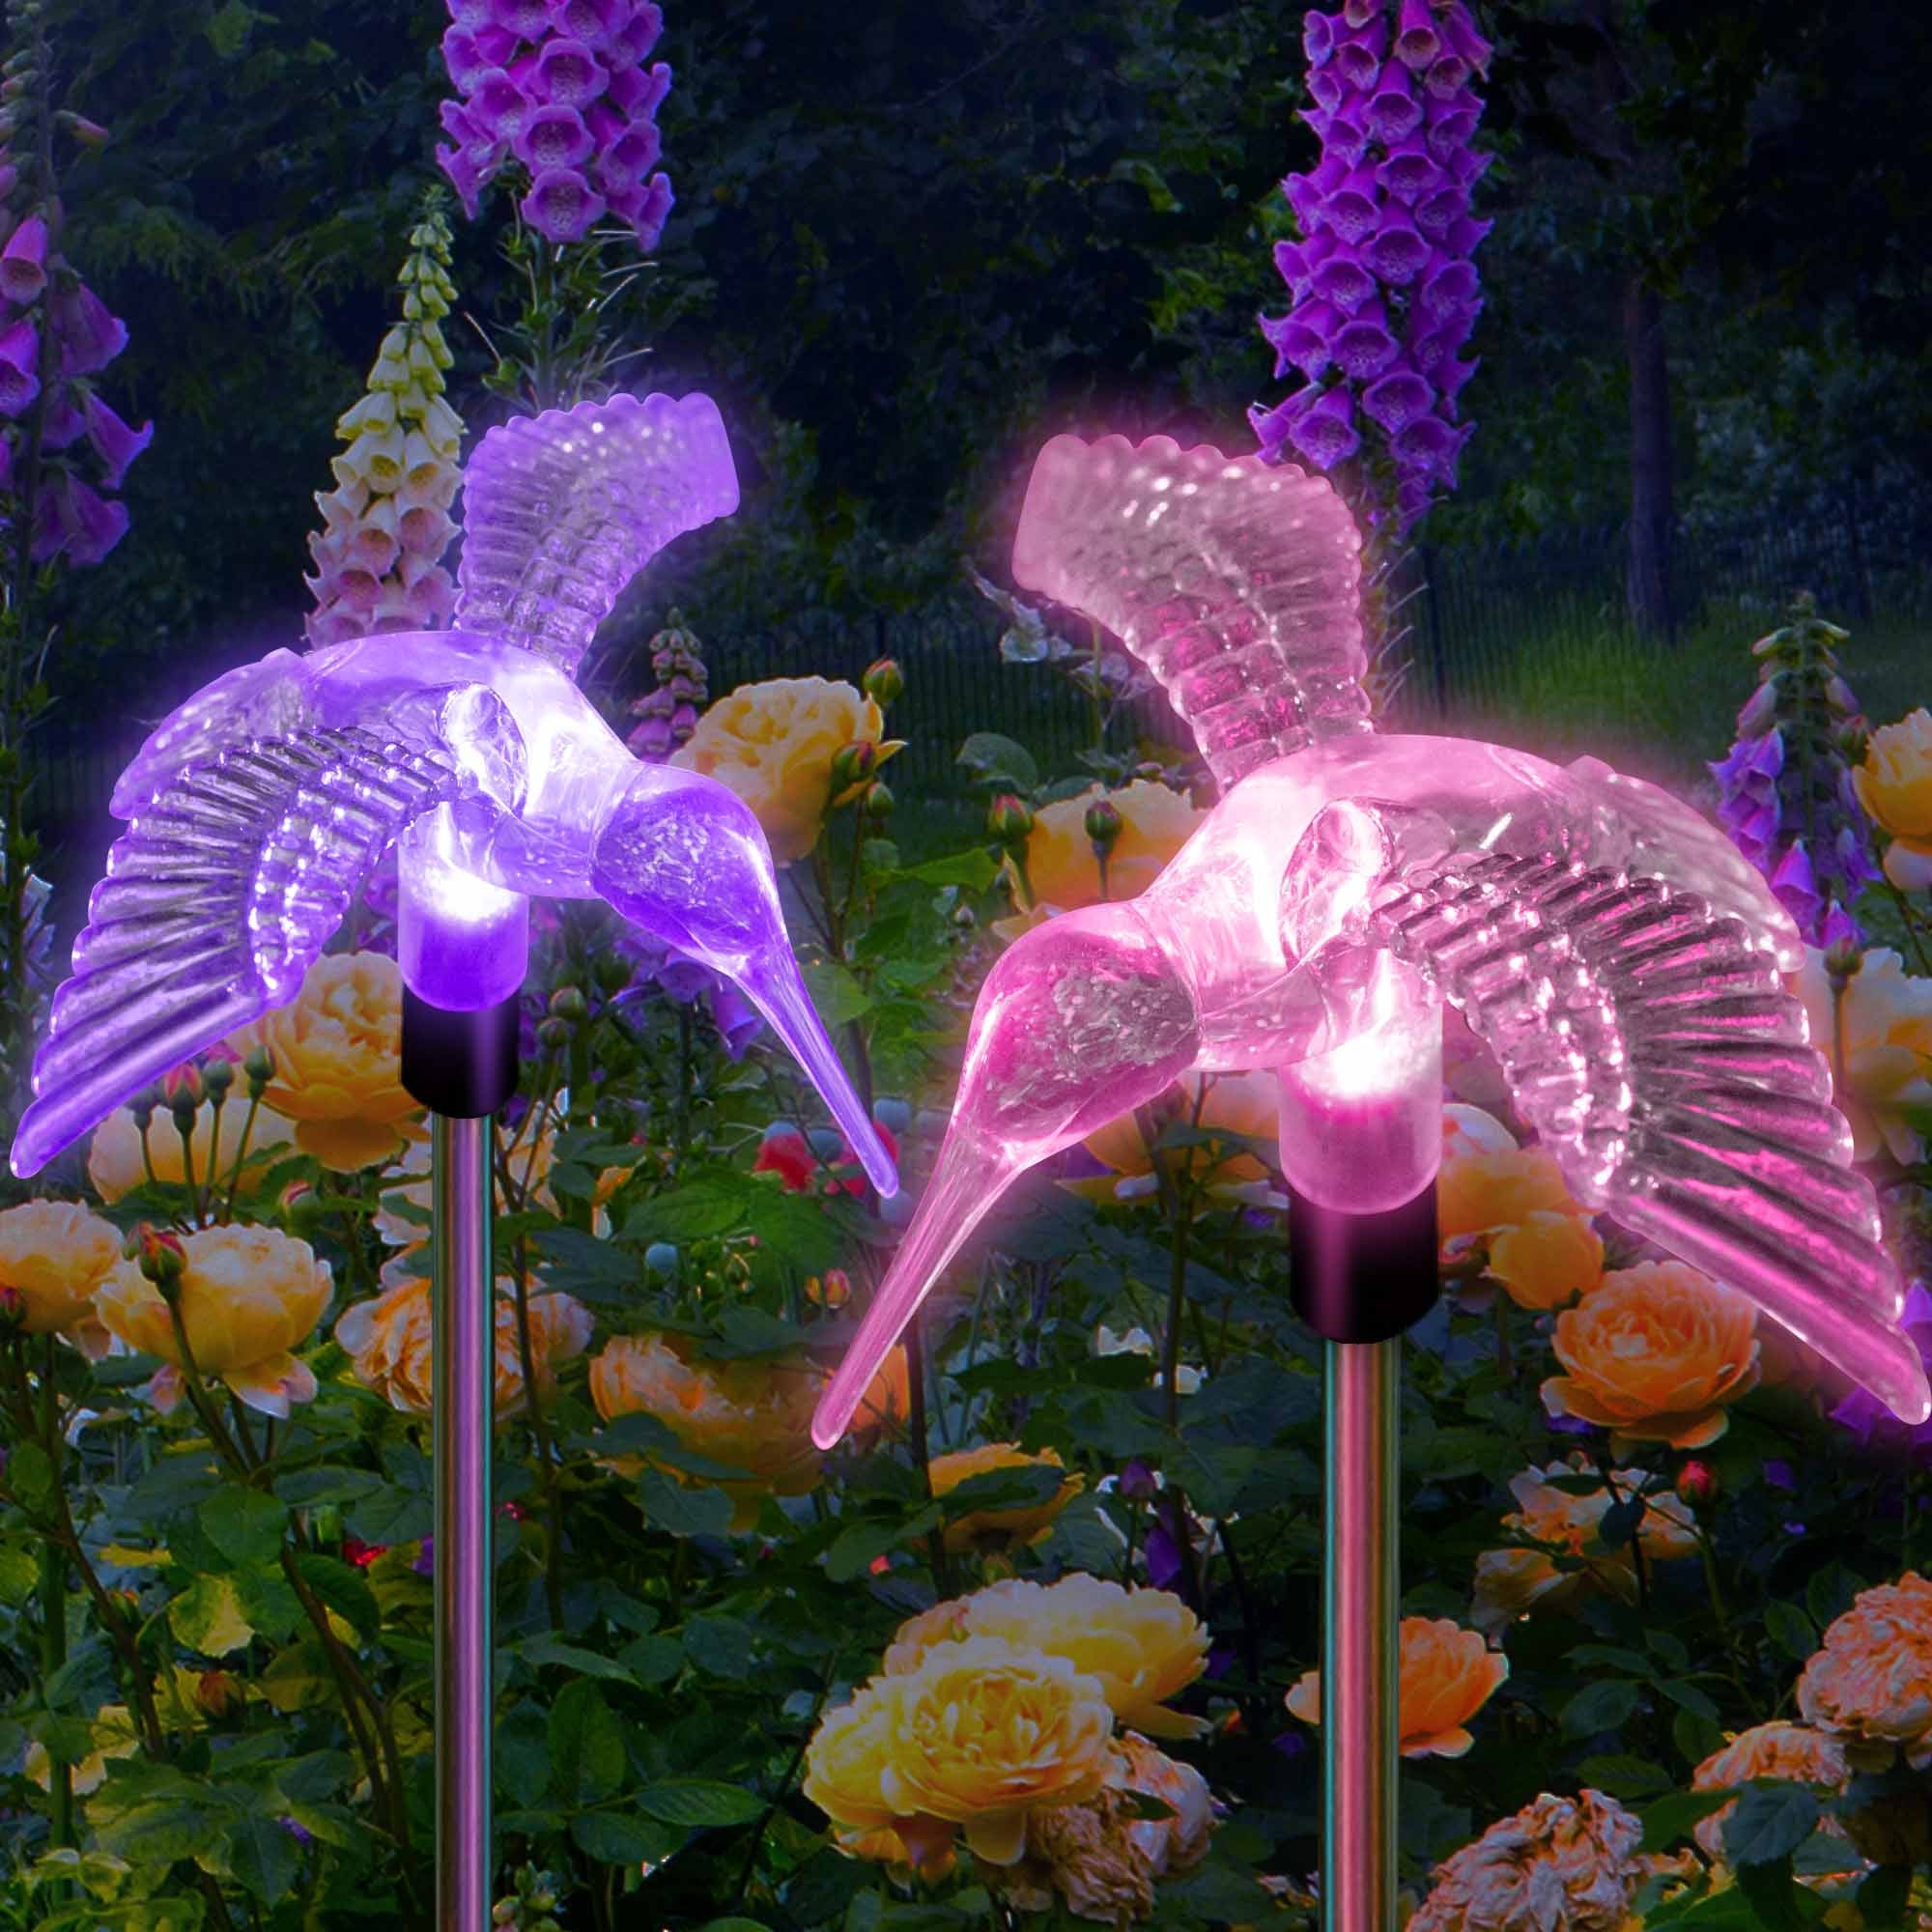 Solar Outdoor Garden Lights Color Changing Hummingbirds For Lawn Patio Yard  Decoration (Wing Down)